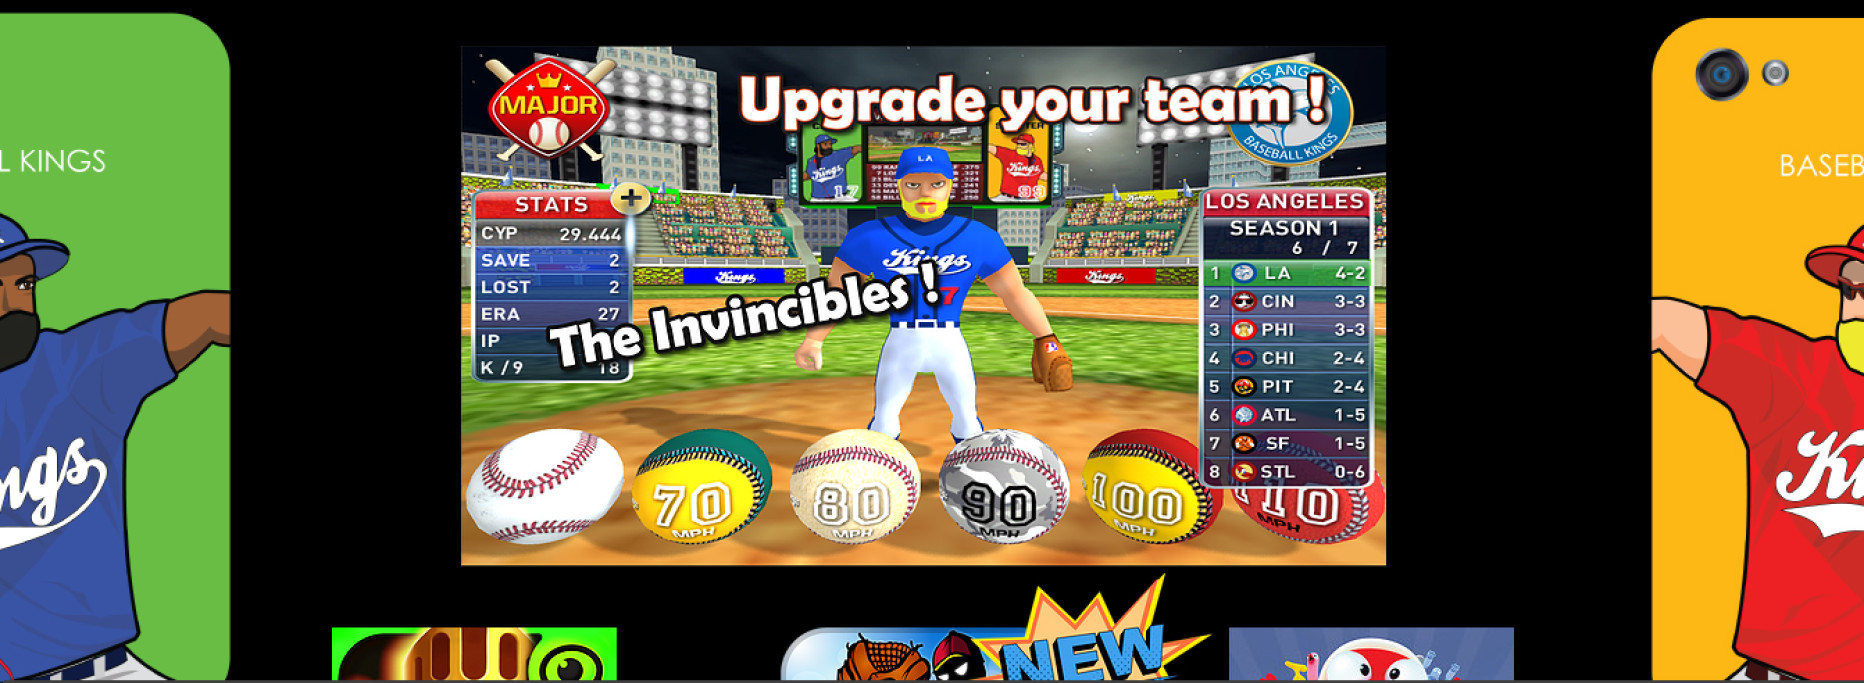 Baseball Kings – Practice Your Pitch on the Go!